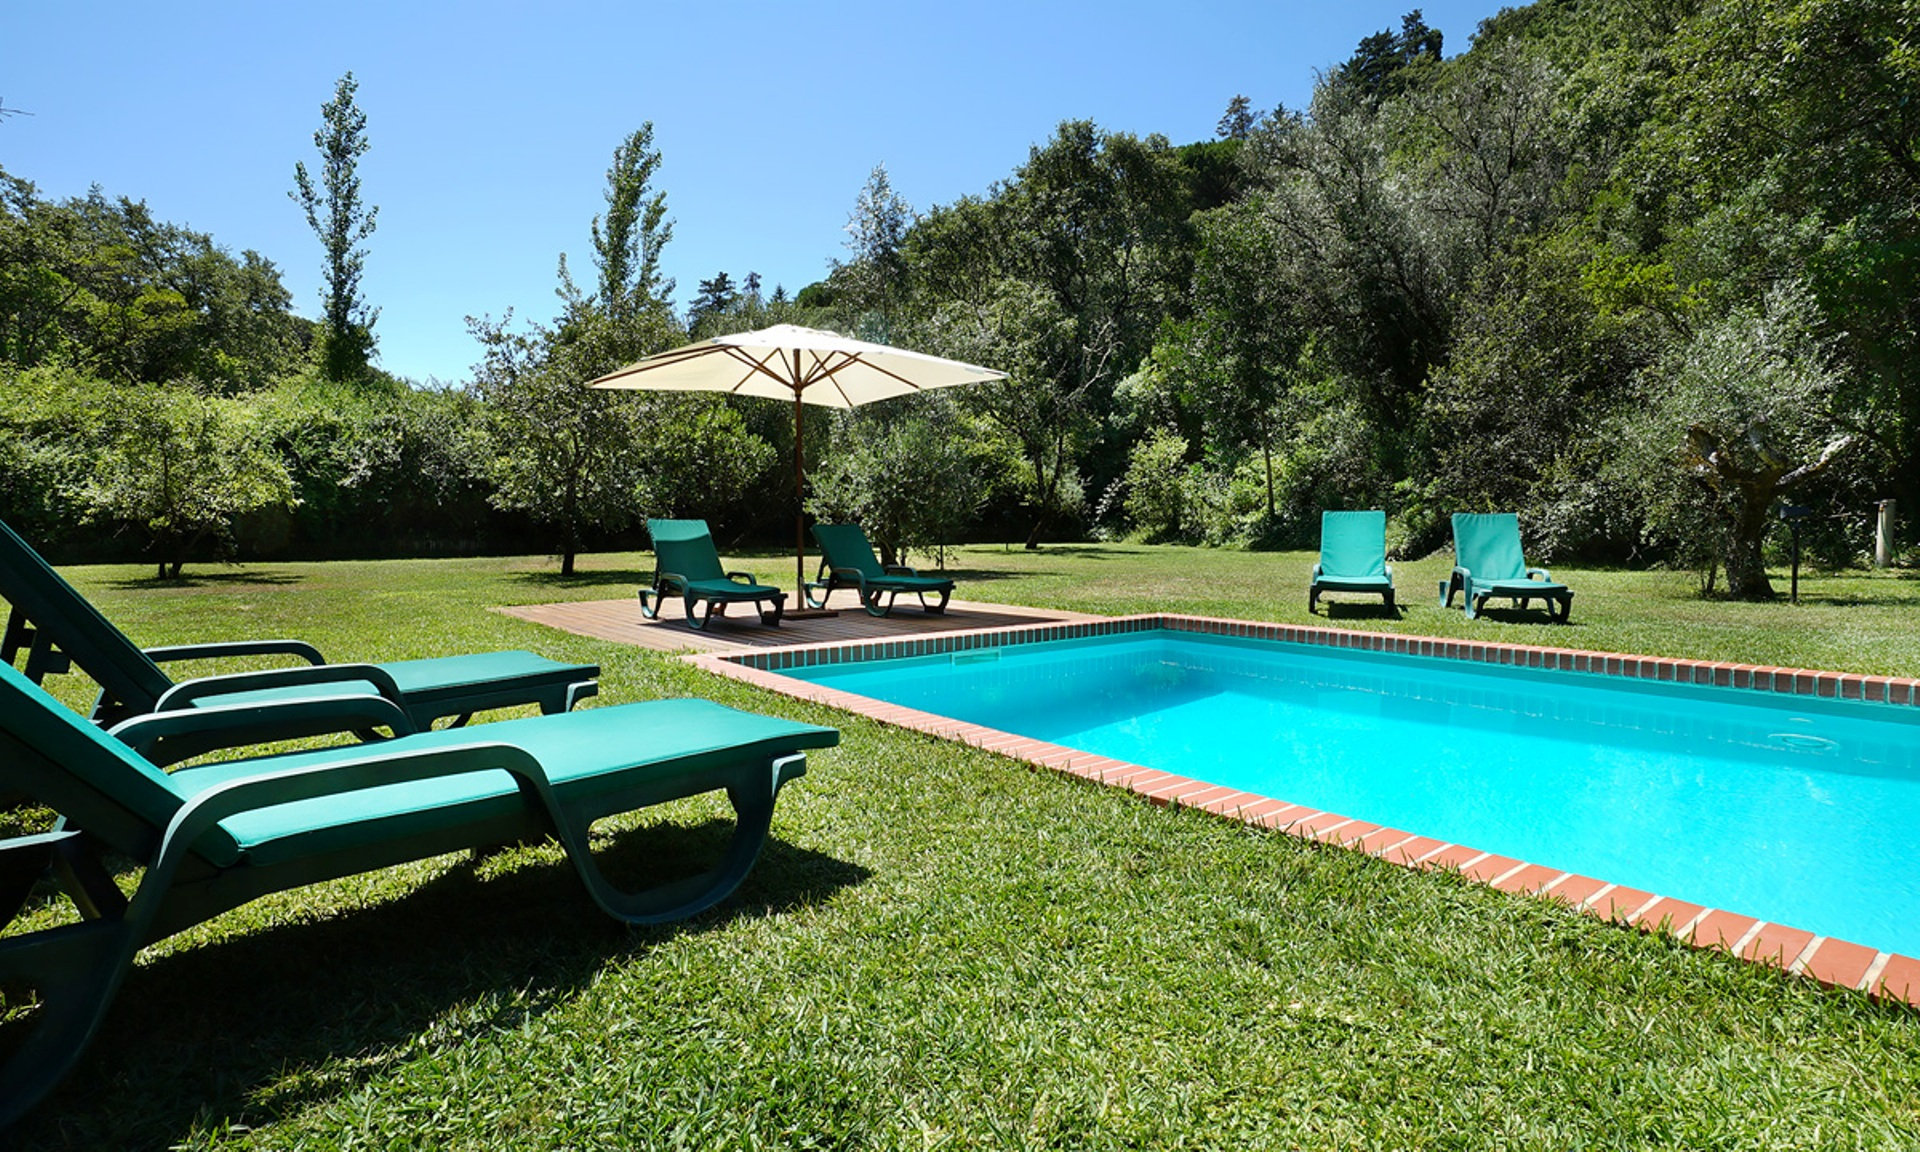 Cabana do Bispo – Luxury villa with private swimming pool near the beach